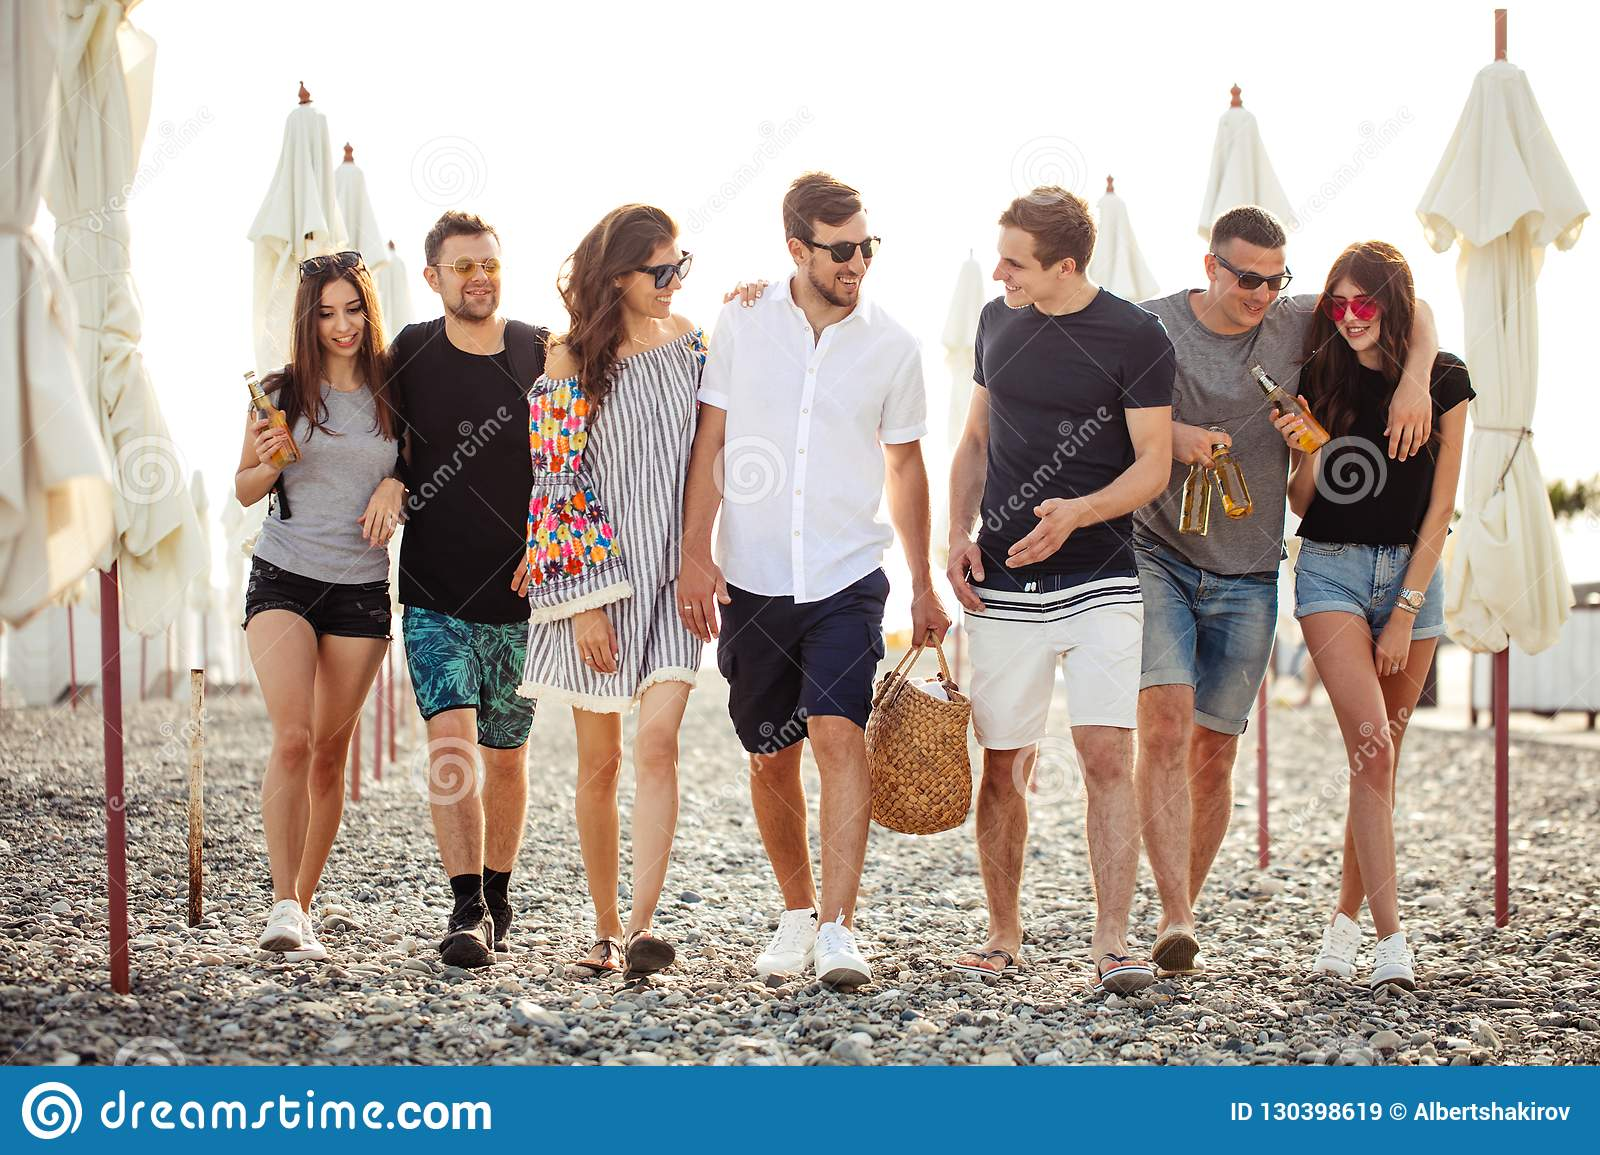 Holidays, vacation. group of friends having fun on beach, walking, drink beer, smiling and hugging